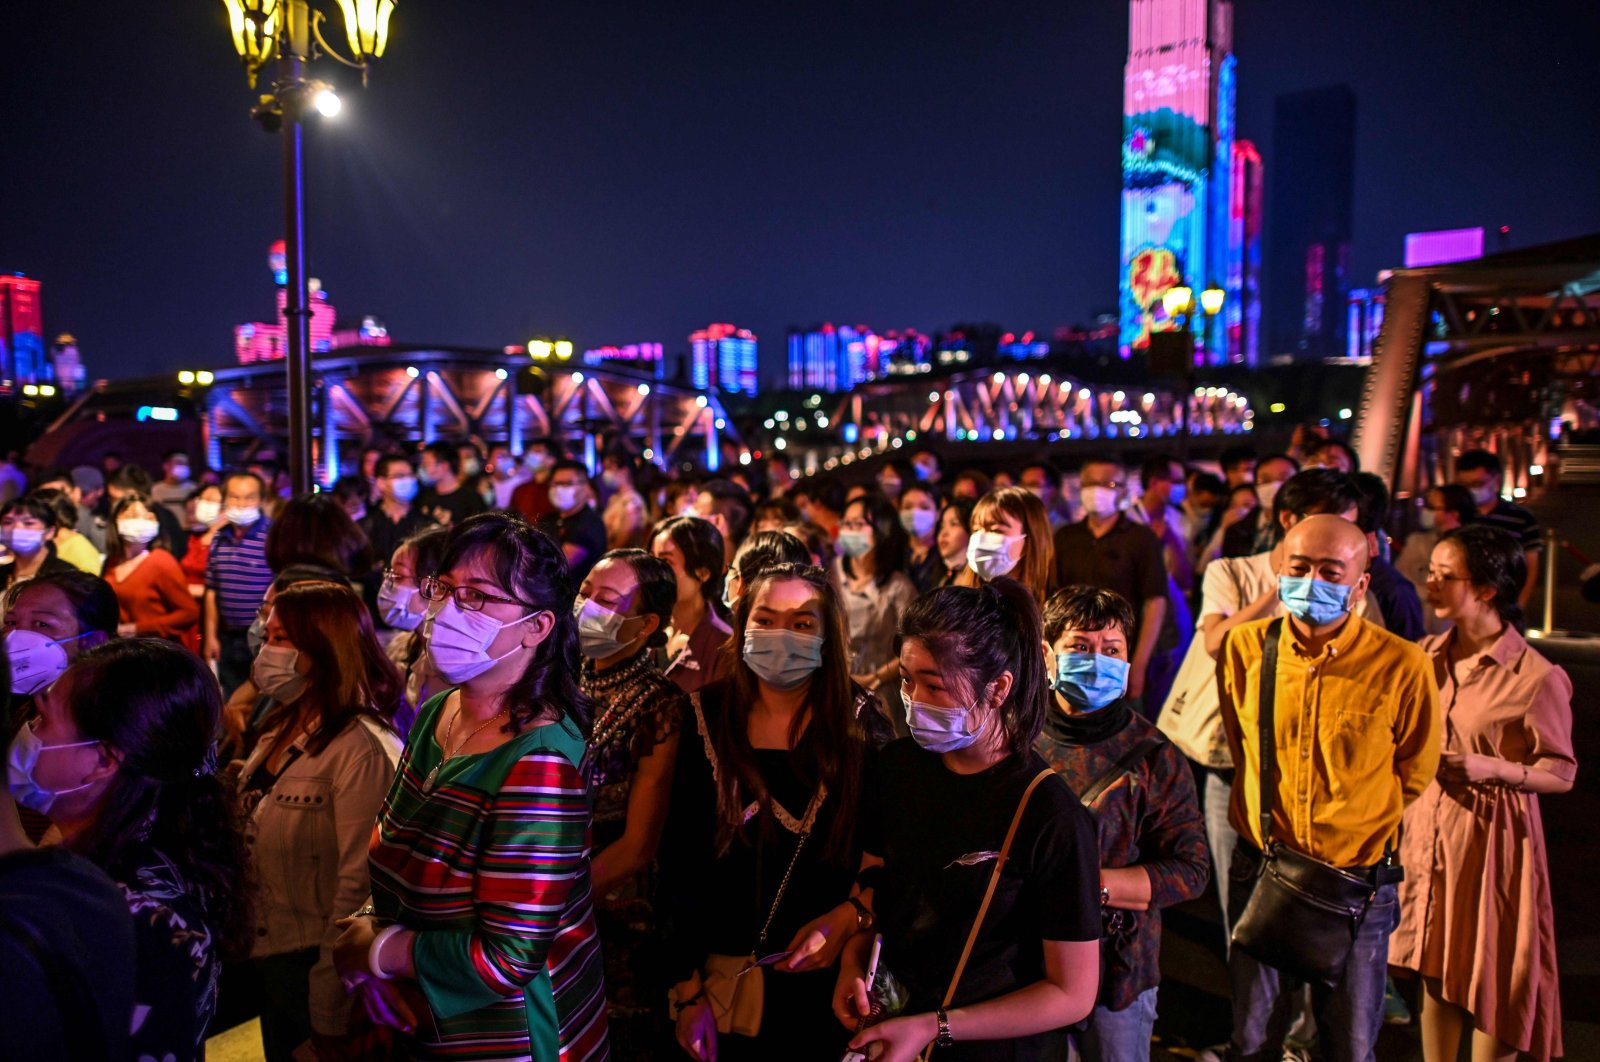 Passengers wearing facemasks wait to board a last century-style boat, featuring a theatrical drama set between the 1920s and 1930s in Wuhan, in China's central Hubei province on Sept. 27, 2020. (AFP Photo)